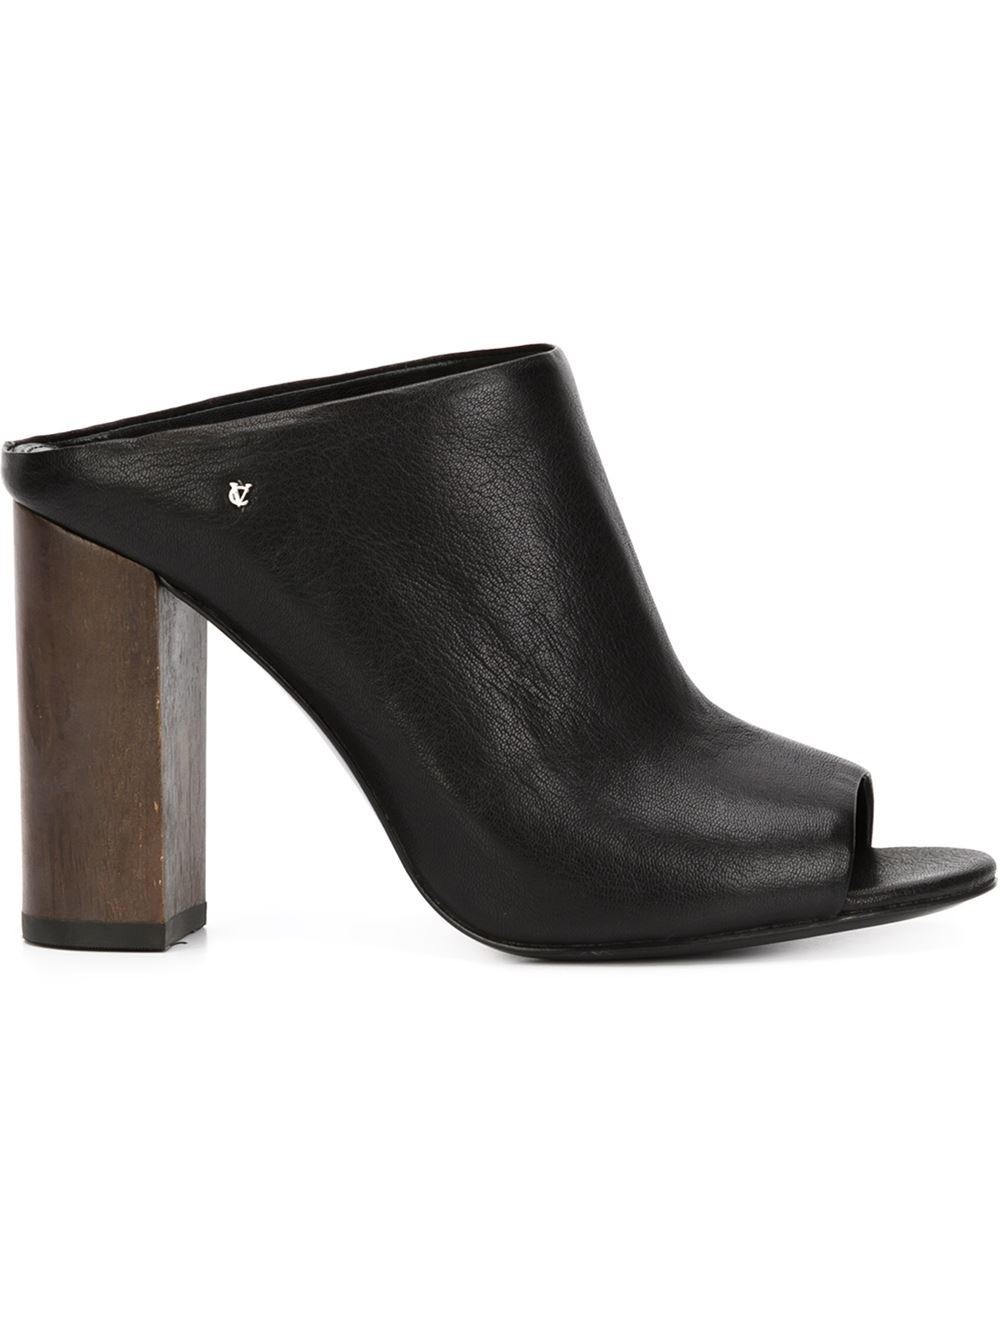 Vince Camuto Open Toe Leather Mules In Black Lyst